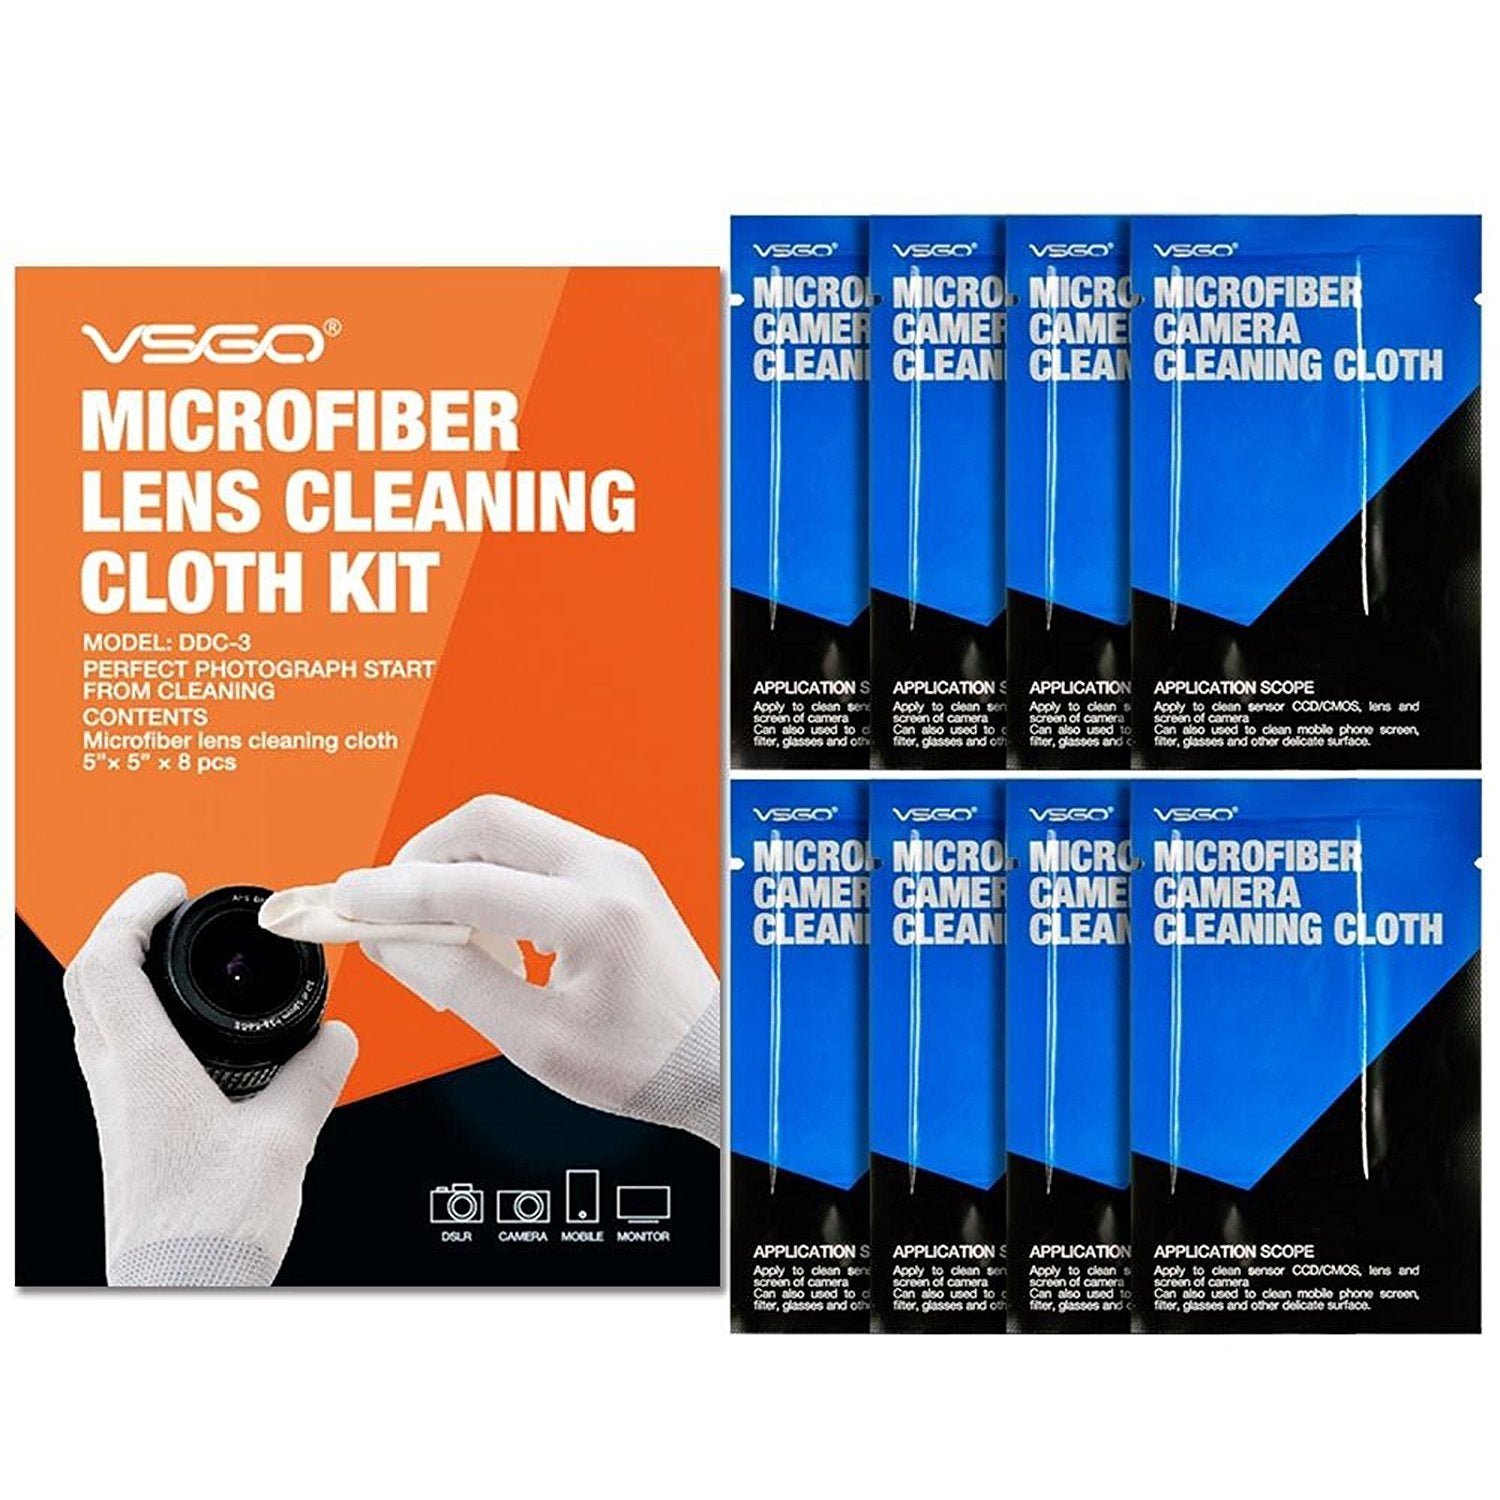 VSGO DDC-3 Microfibre Lens Cleaning Cloth Kit